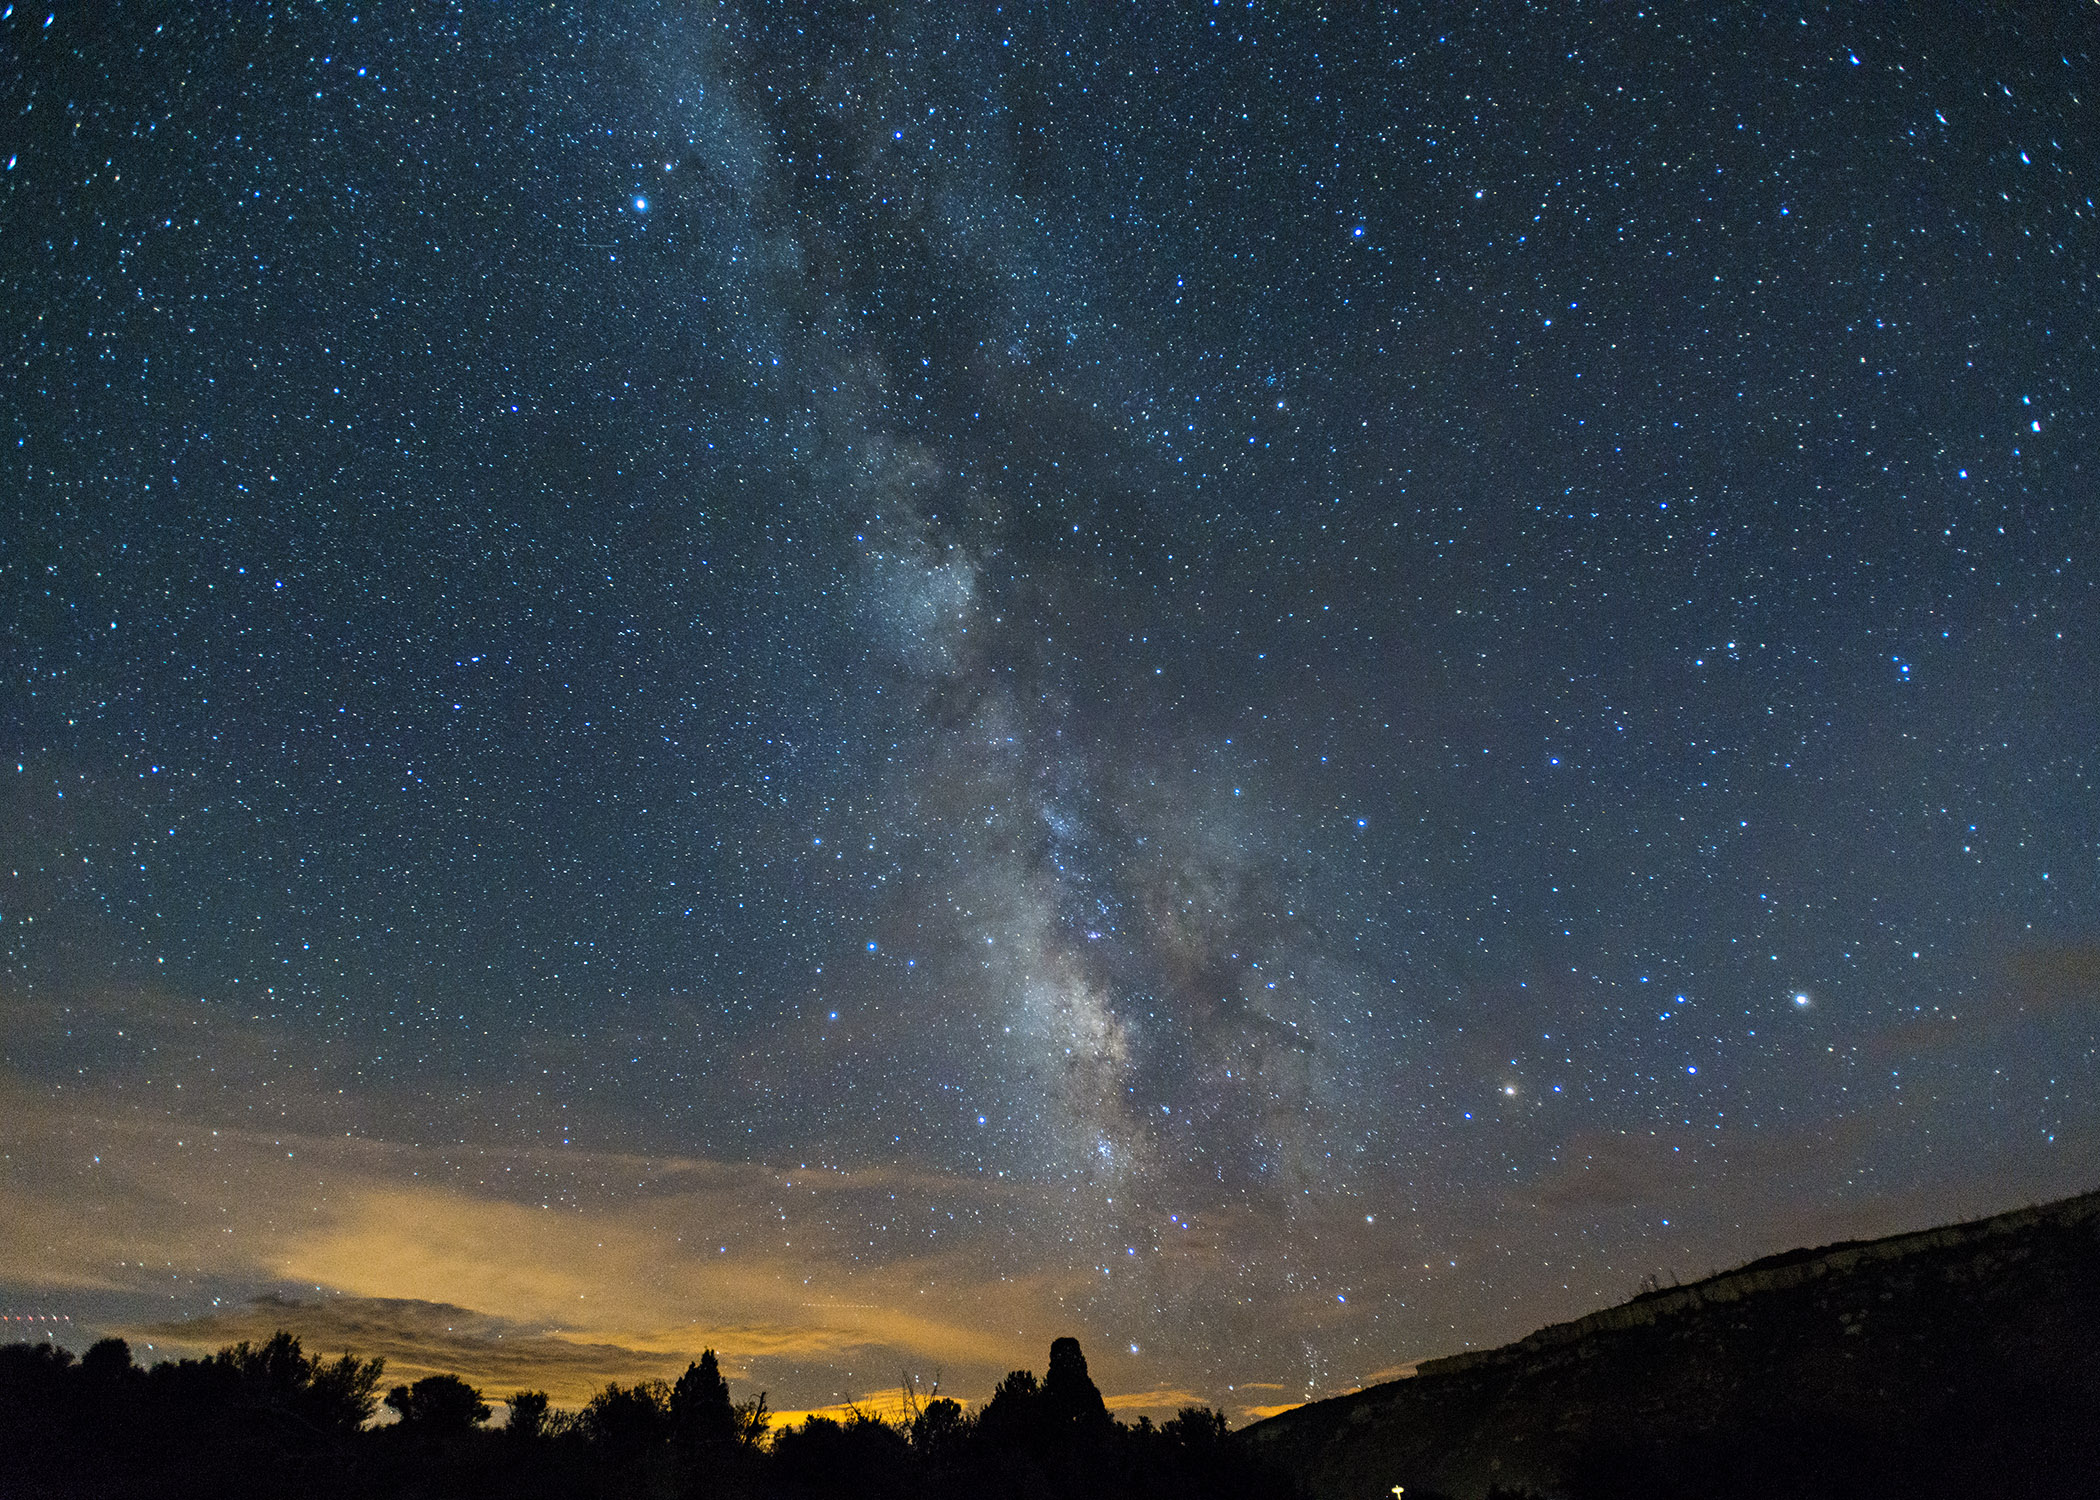 Milky Way over Mesa Verde National Park.  Nikon D800, 17-35mm lens, ISO 2500, f 2.8, 15 seconds